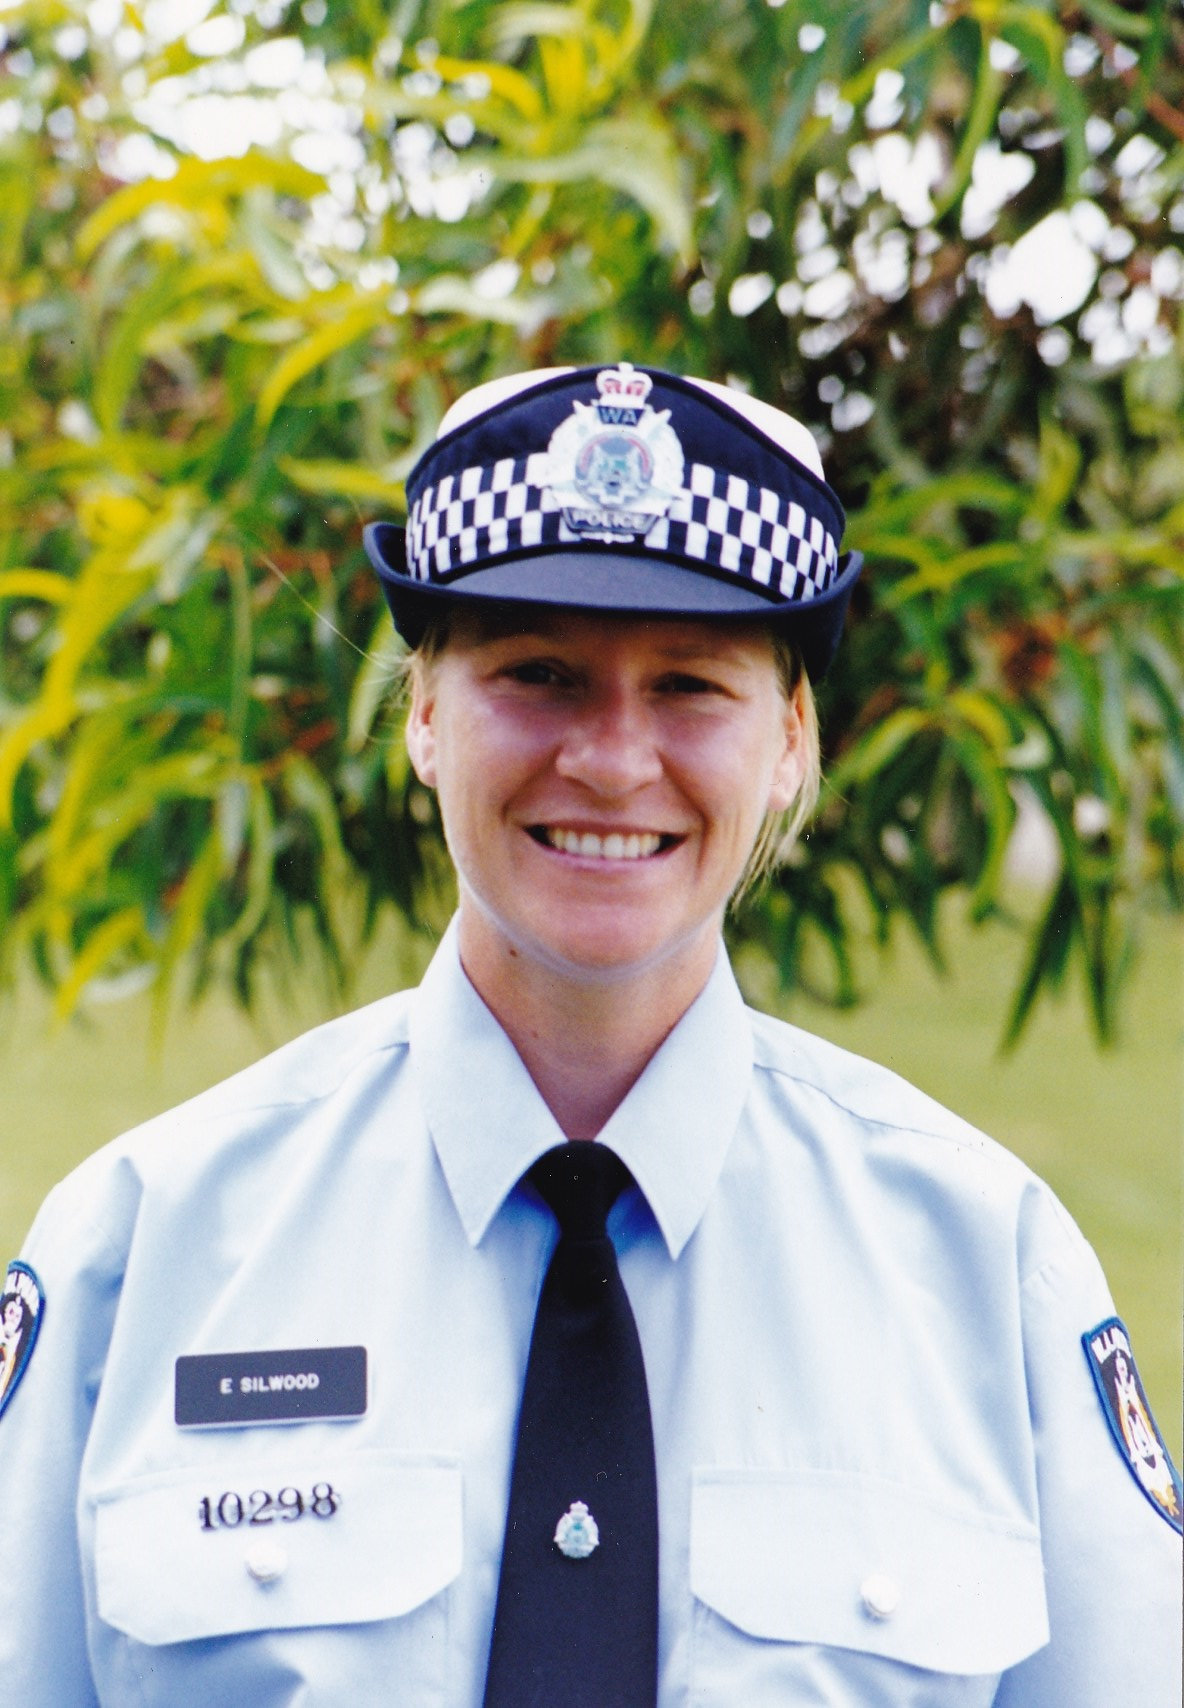 Erica Silwood on her graduation day with WA Police